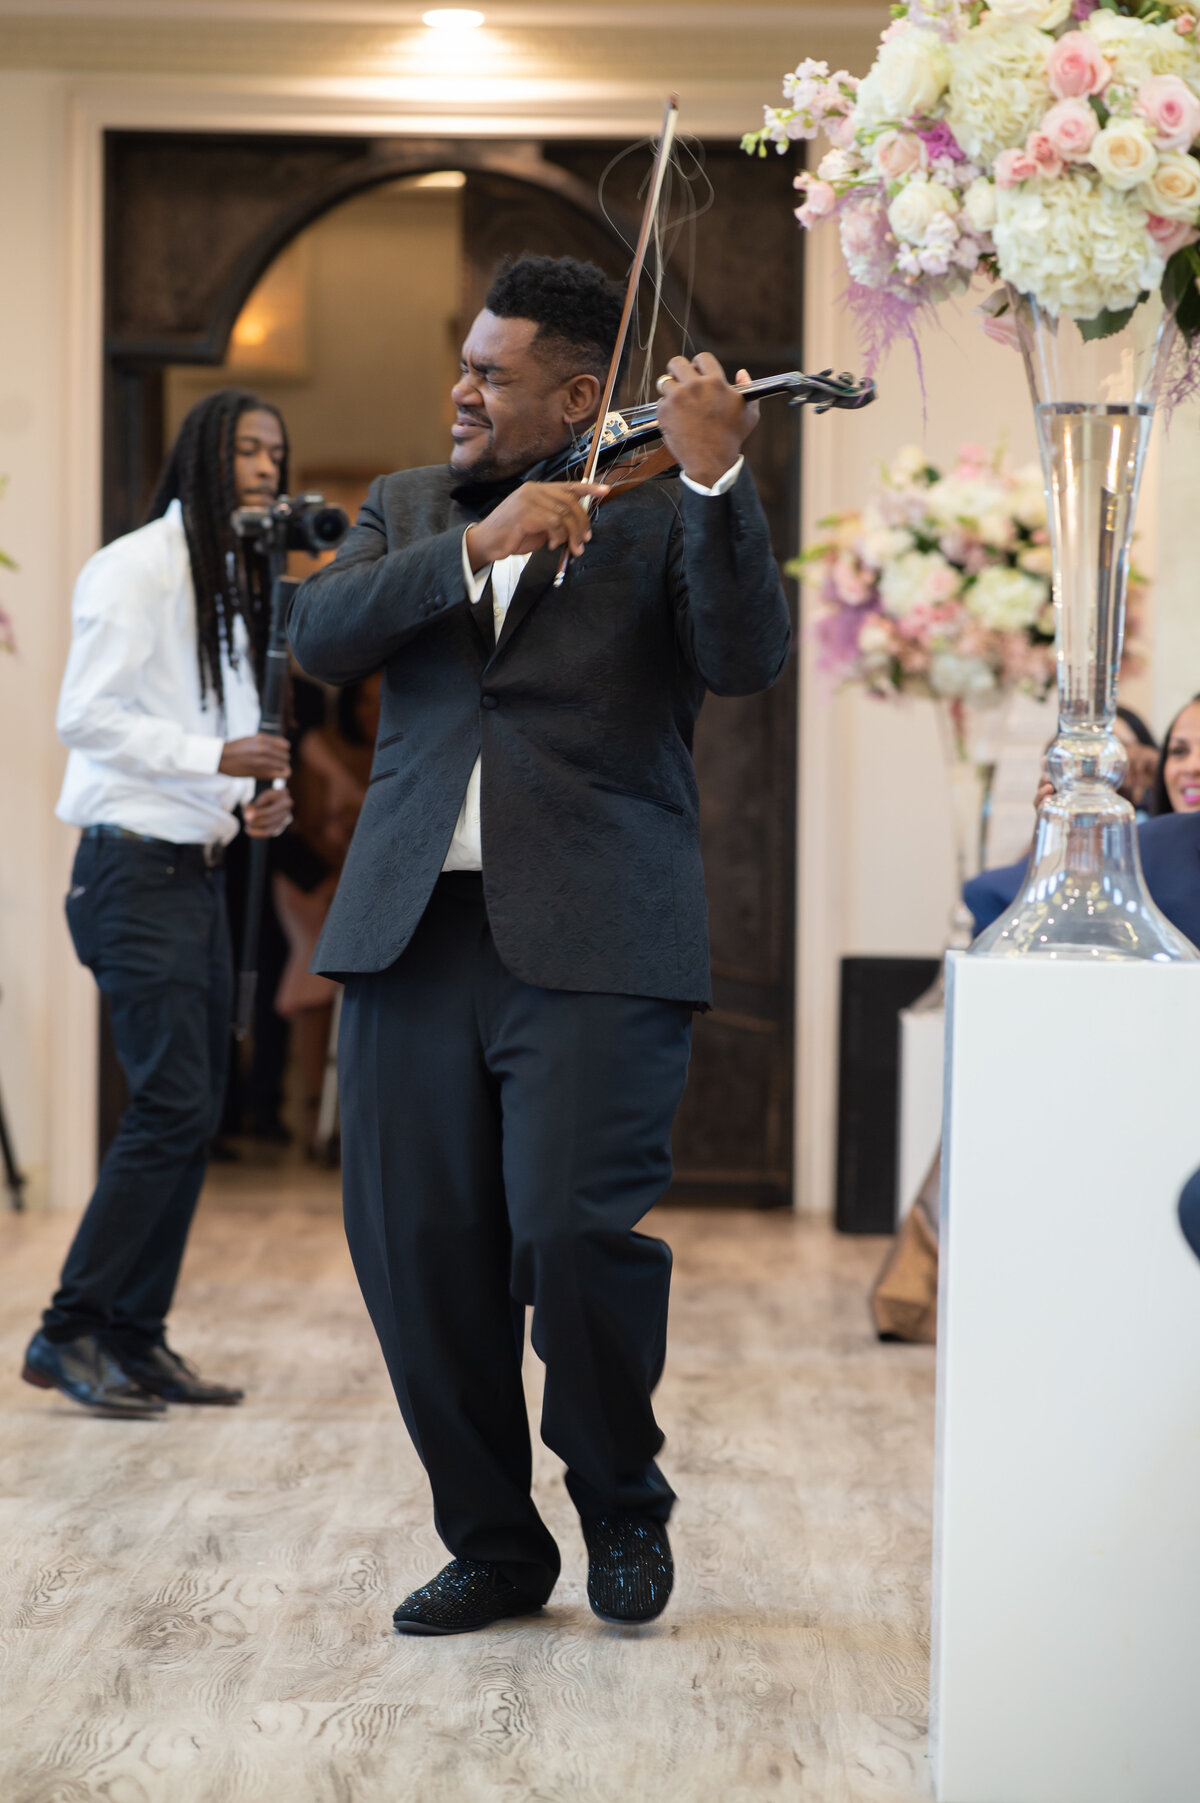 34thstreetevents-violinist-ceremony-knottinghill